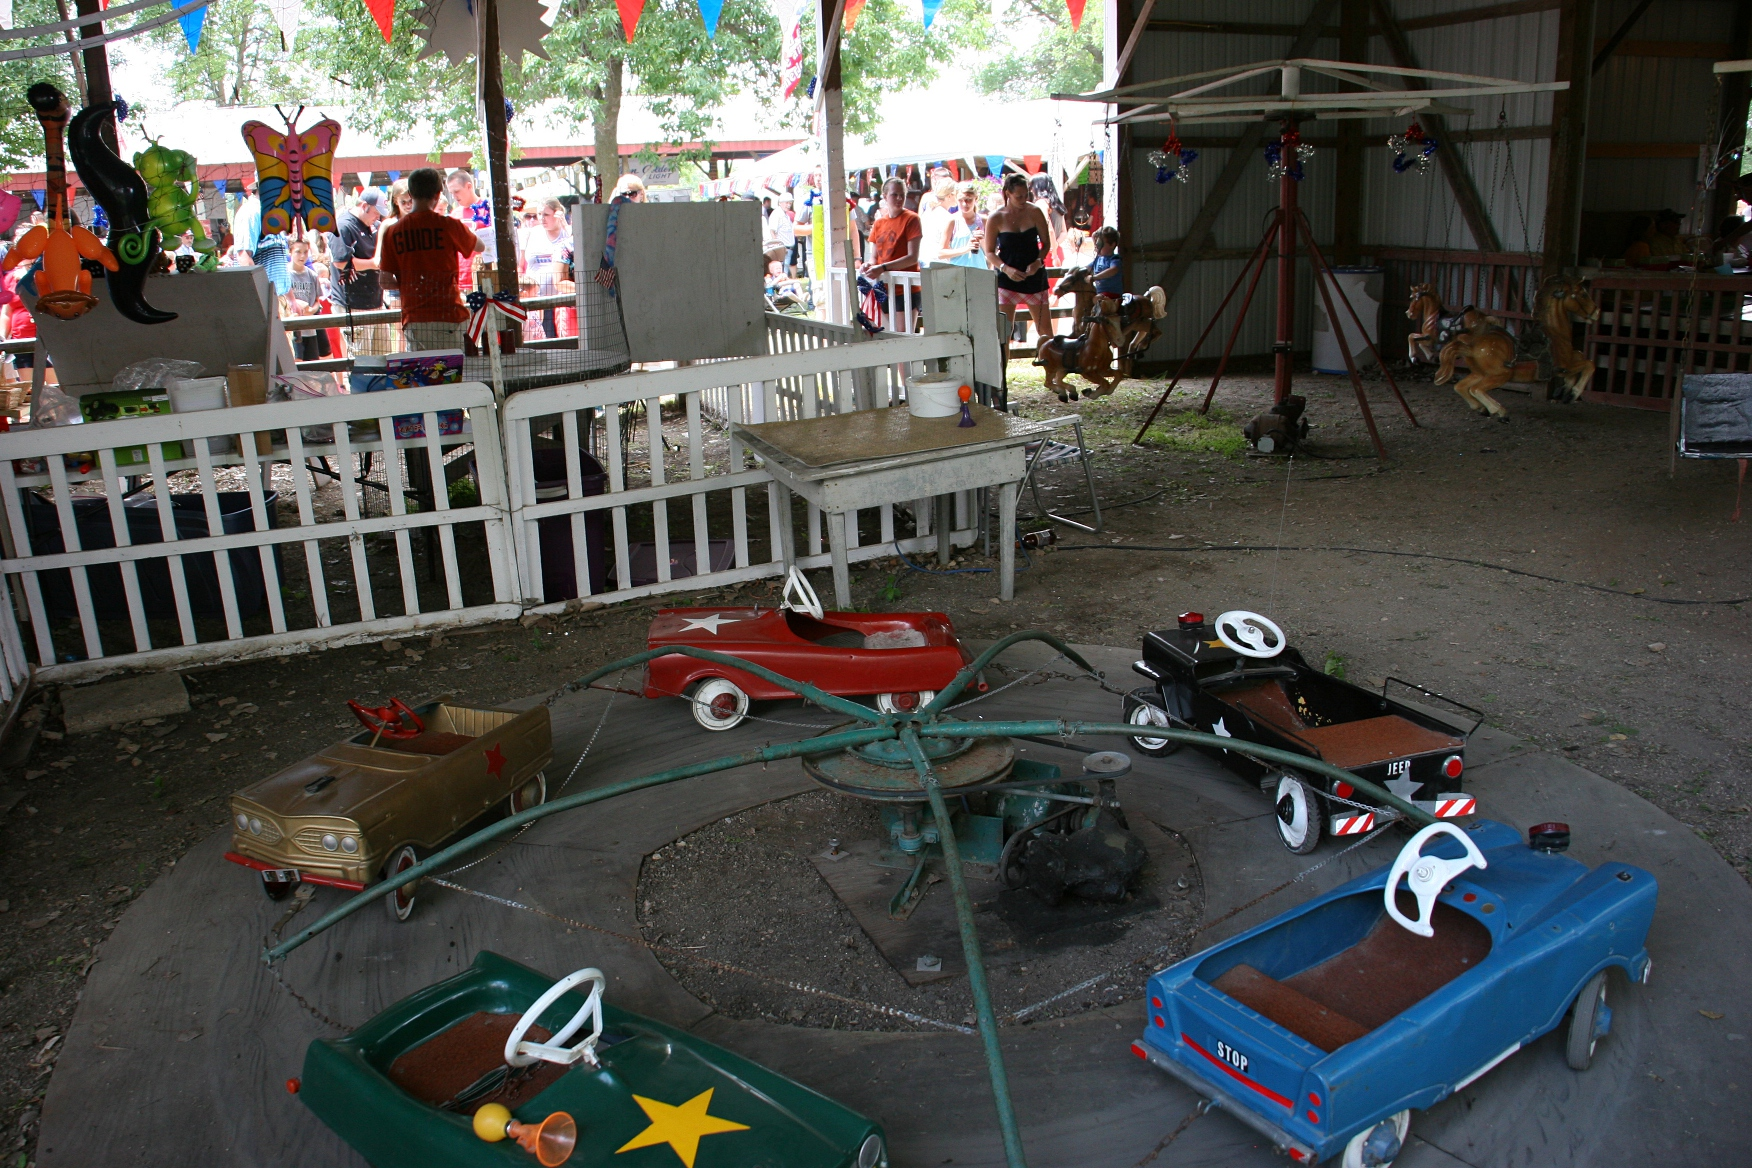 Celebrating the Fourth of July the old-fashioned way in rural North Morristown » Fourth of July, 43 overview of kids' rides. The homemade carnival ...